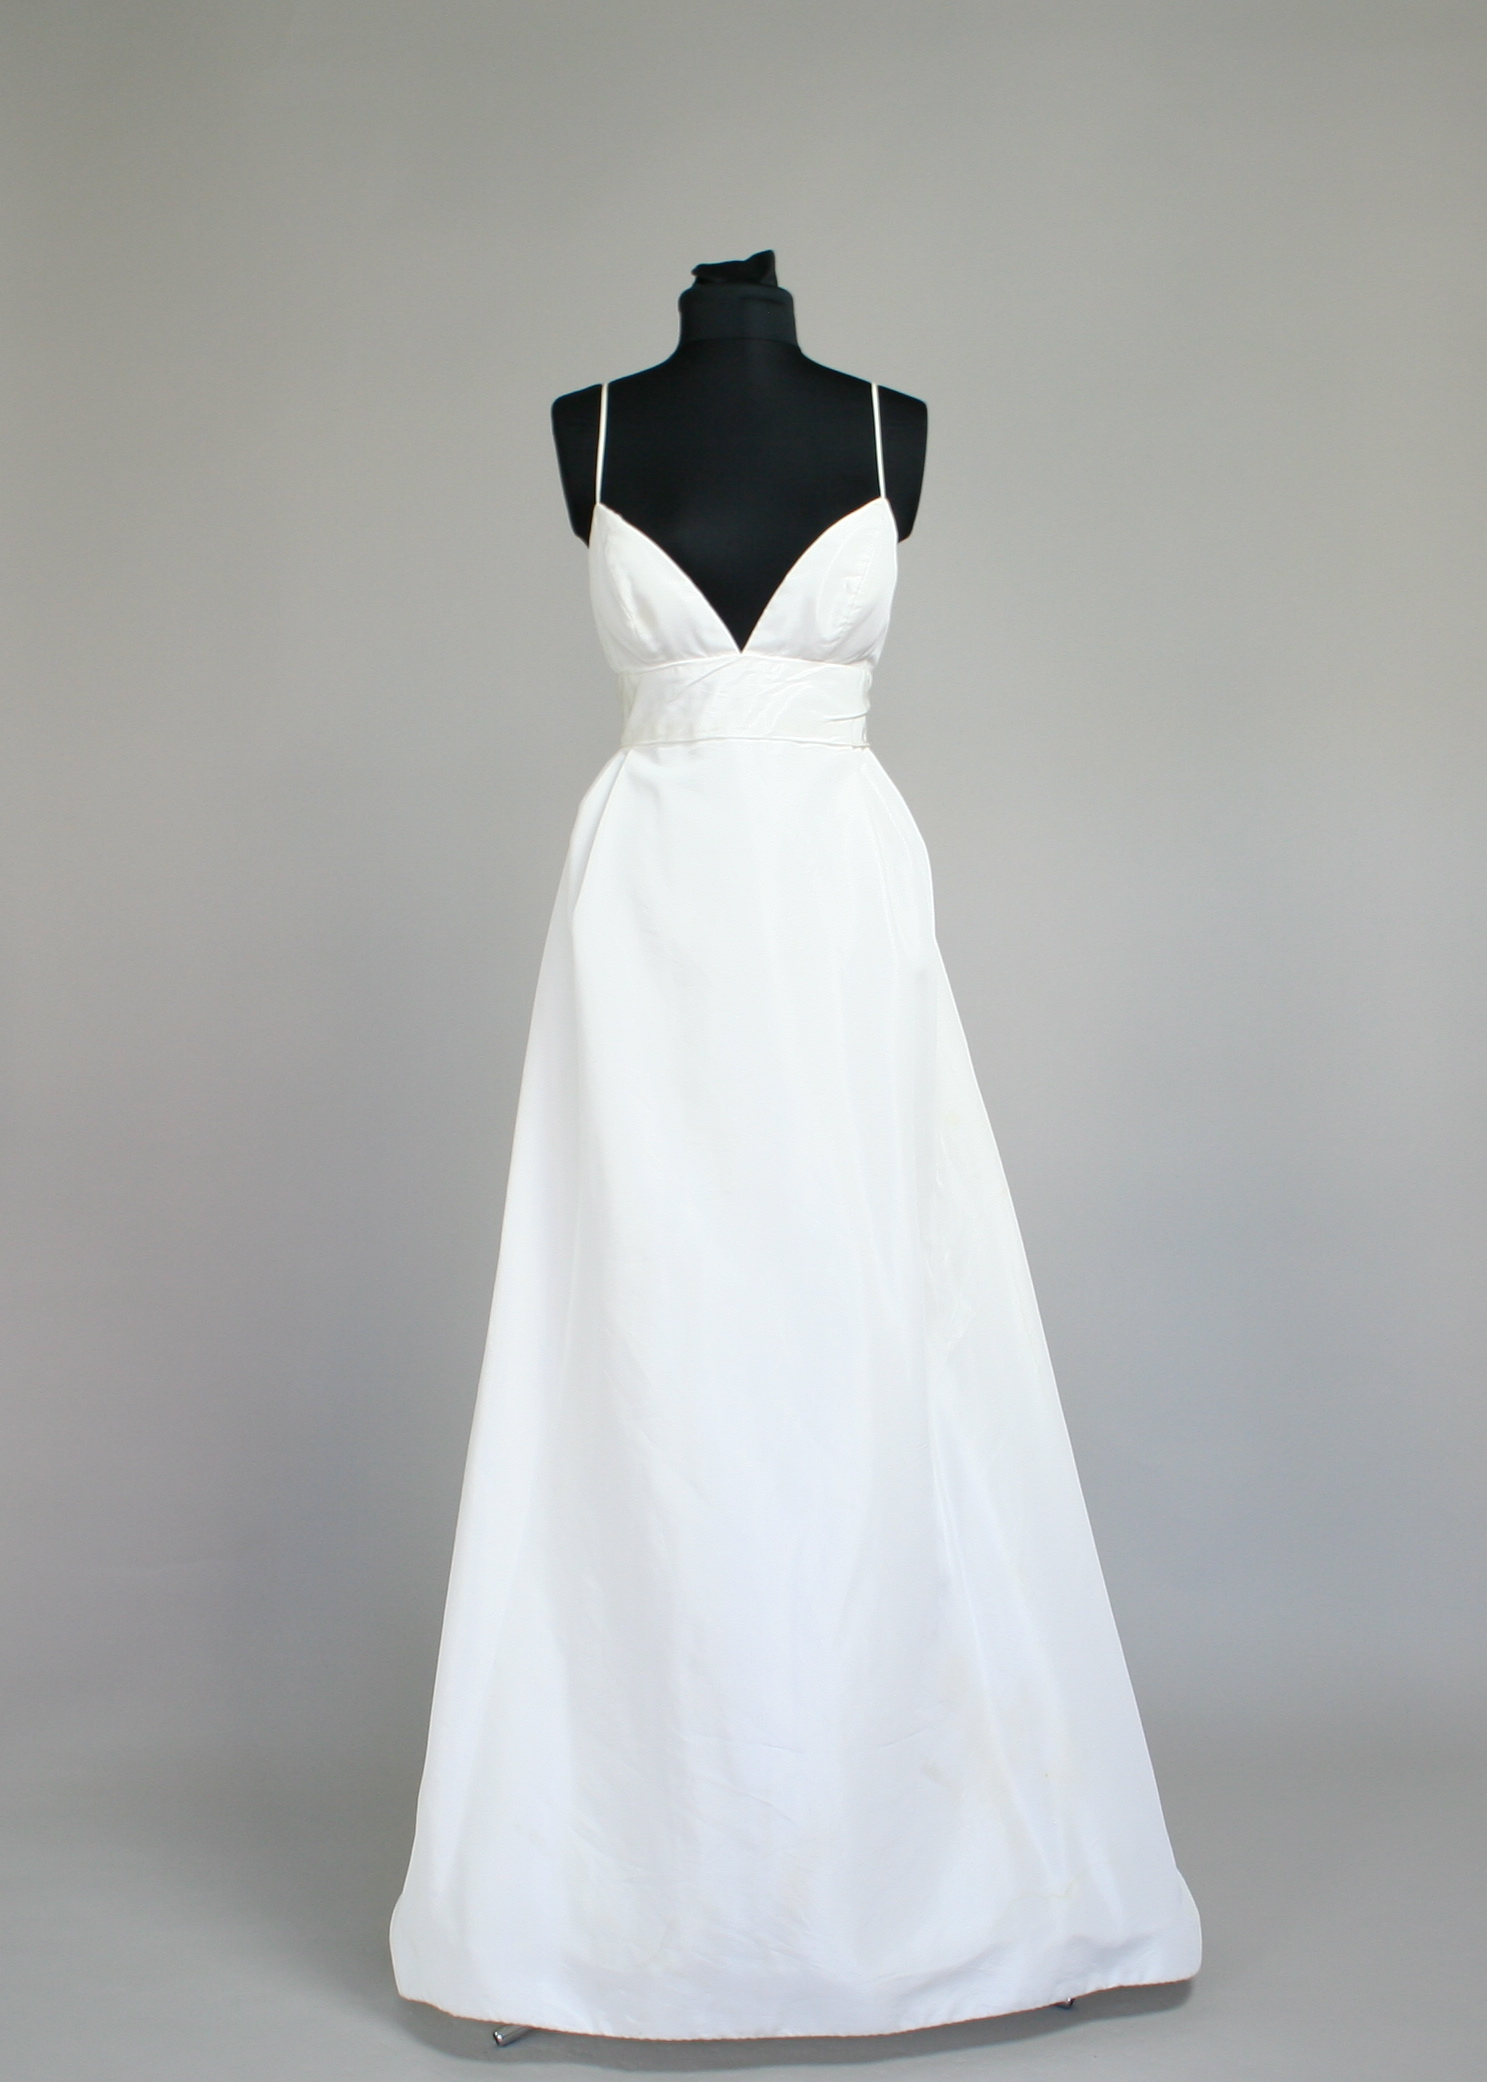 Wedding Dresses Consignment Seattle Wa - Wedding Short Dresses